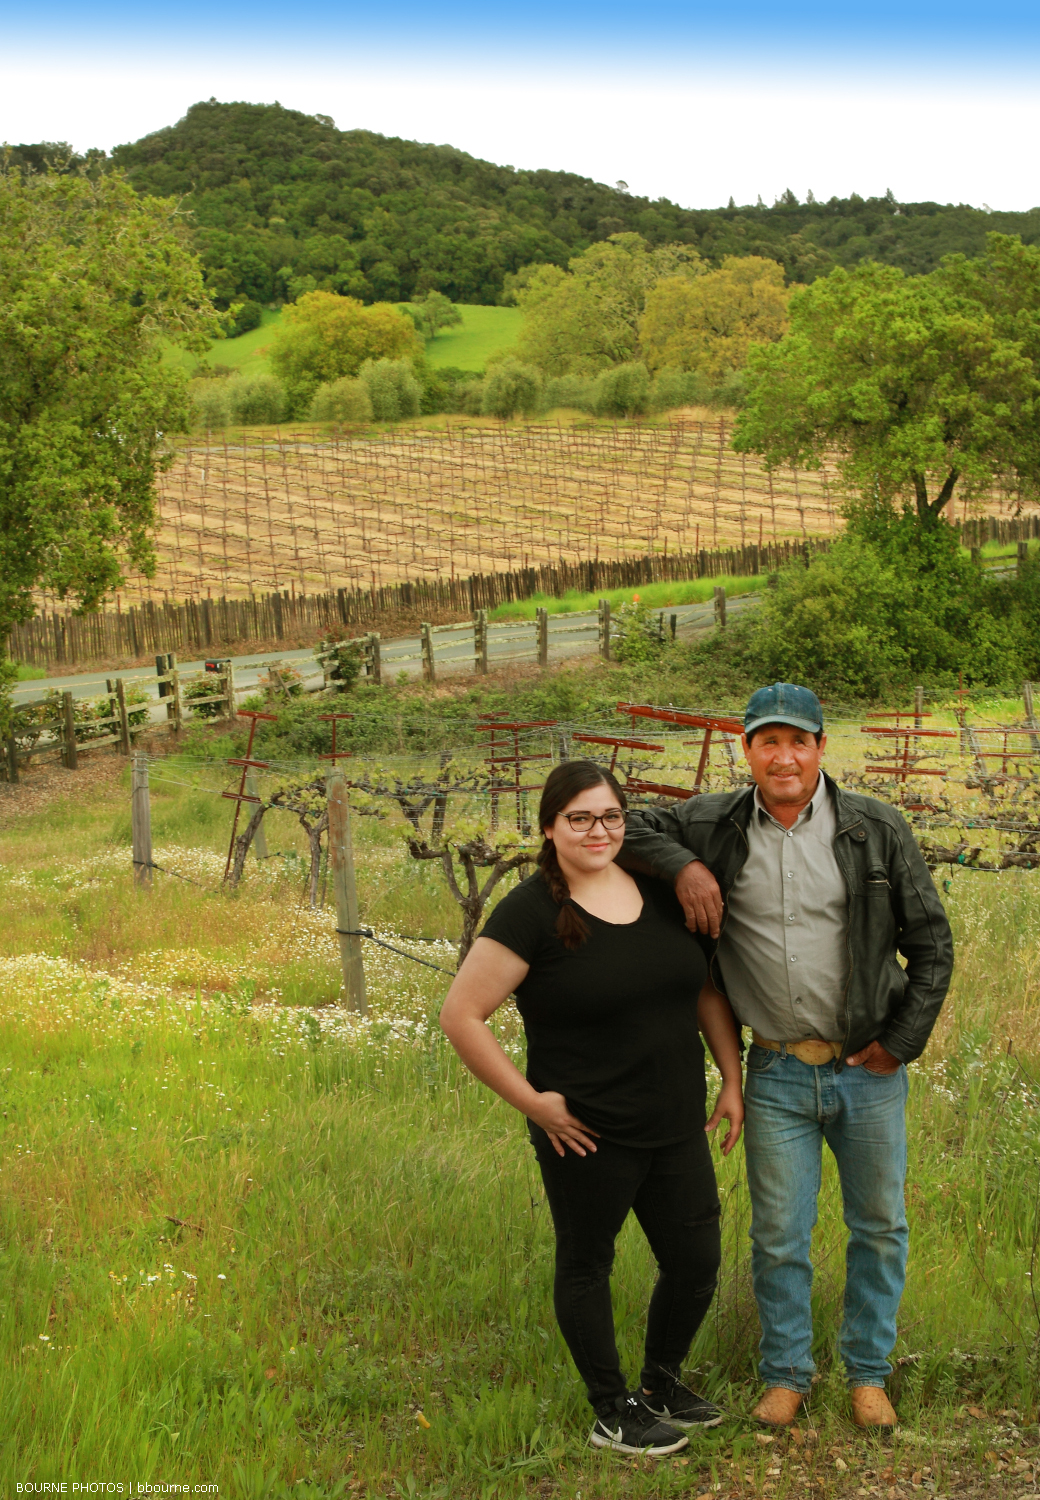 Erica and Juan standing side by side posing in front of rolling vineyards and hills.